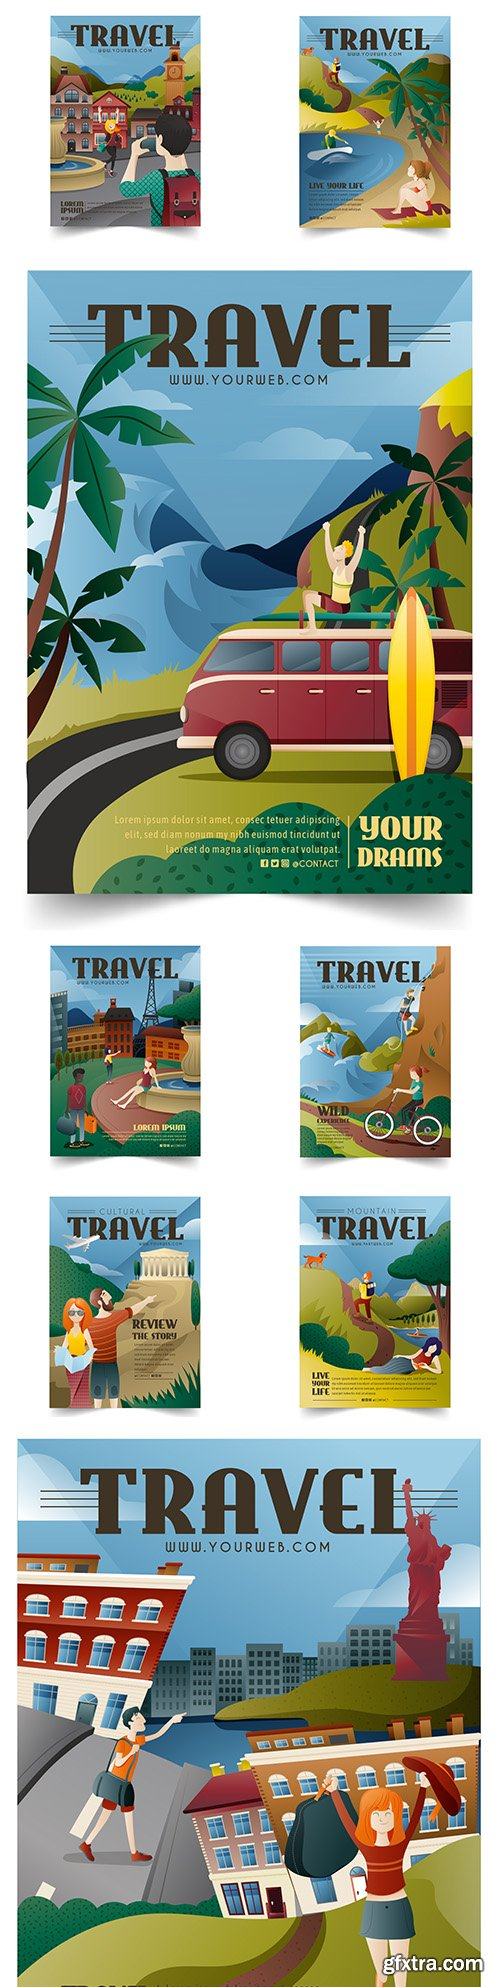 Illustrated poster for lovers travel different attractions